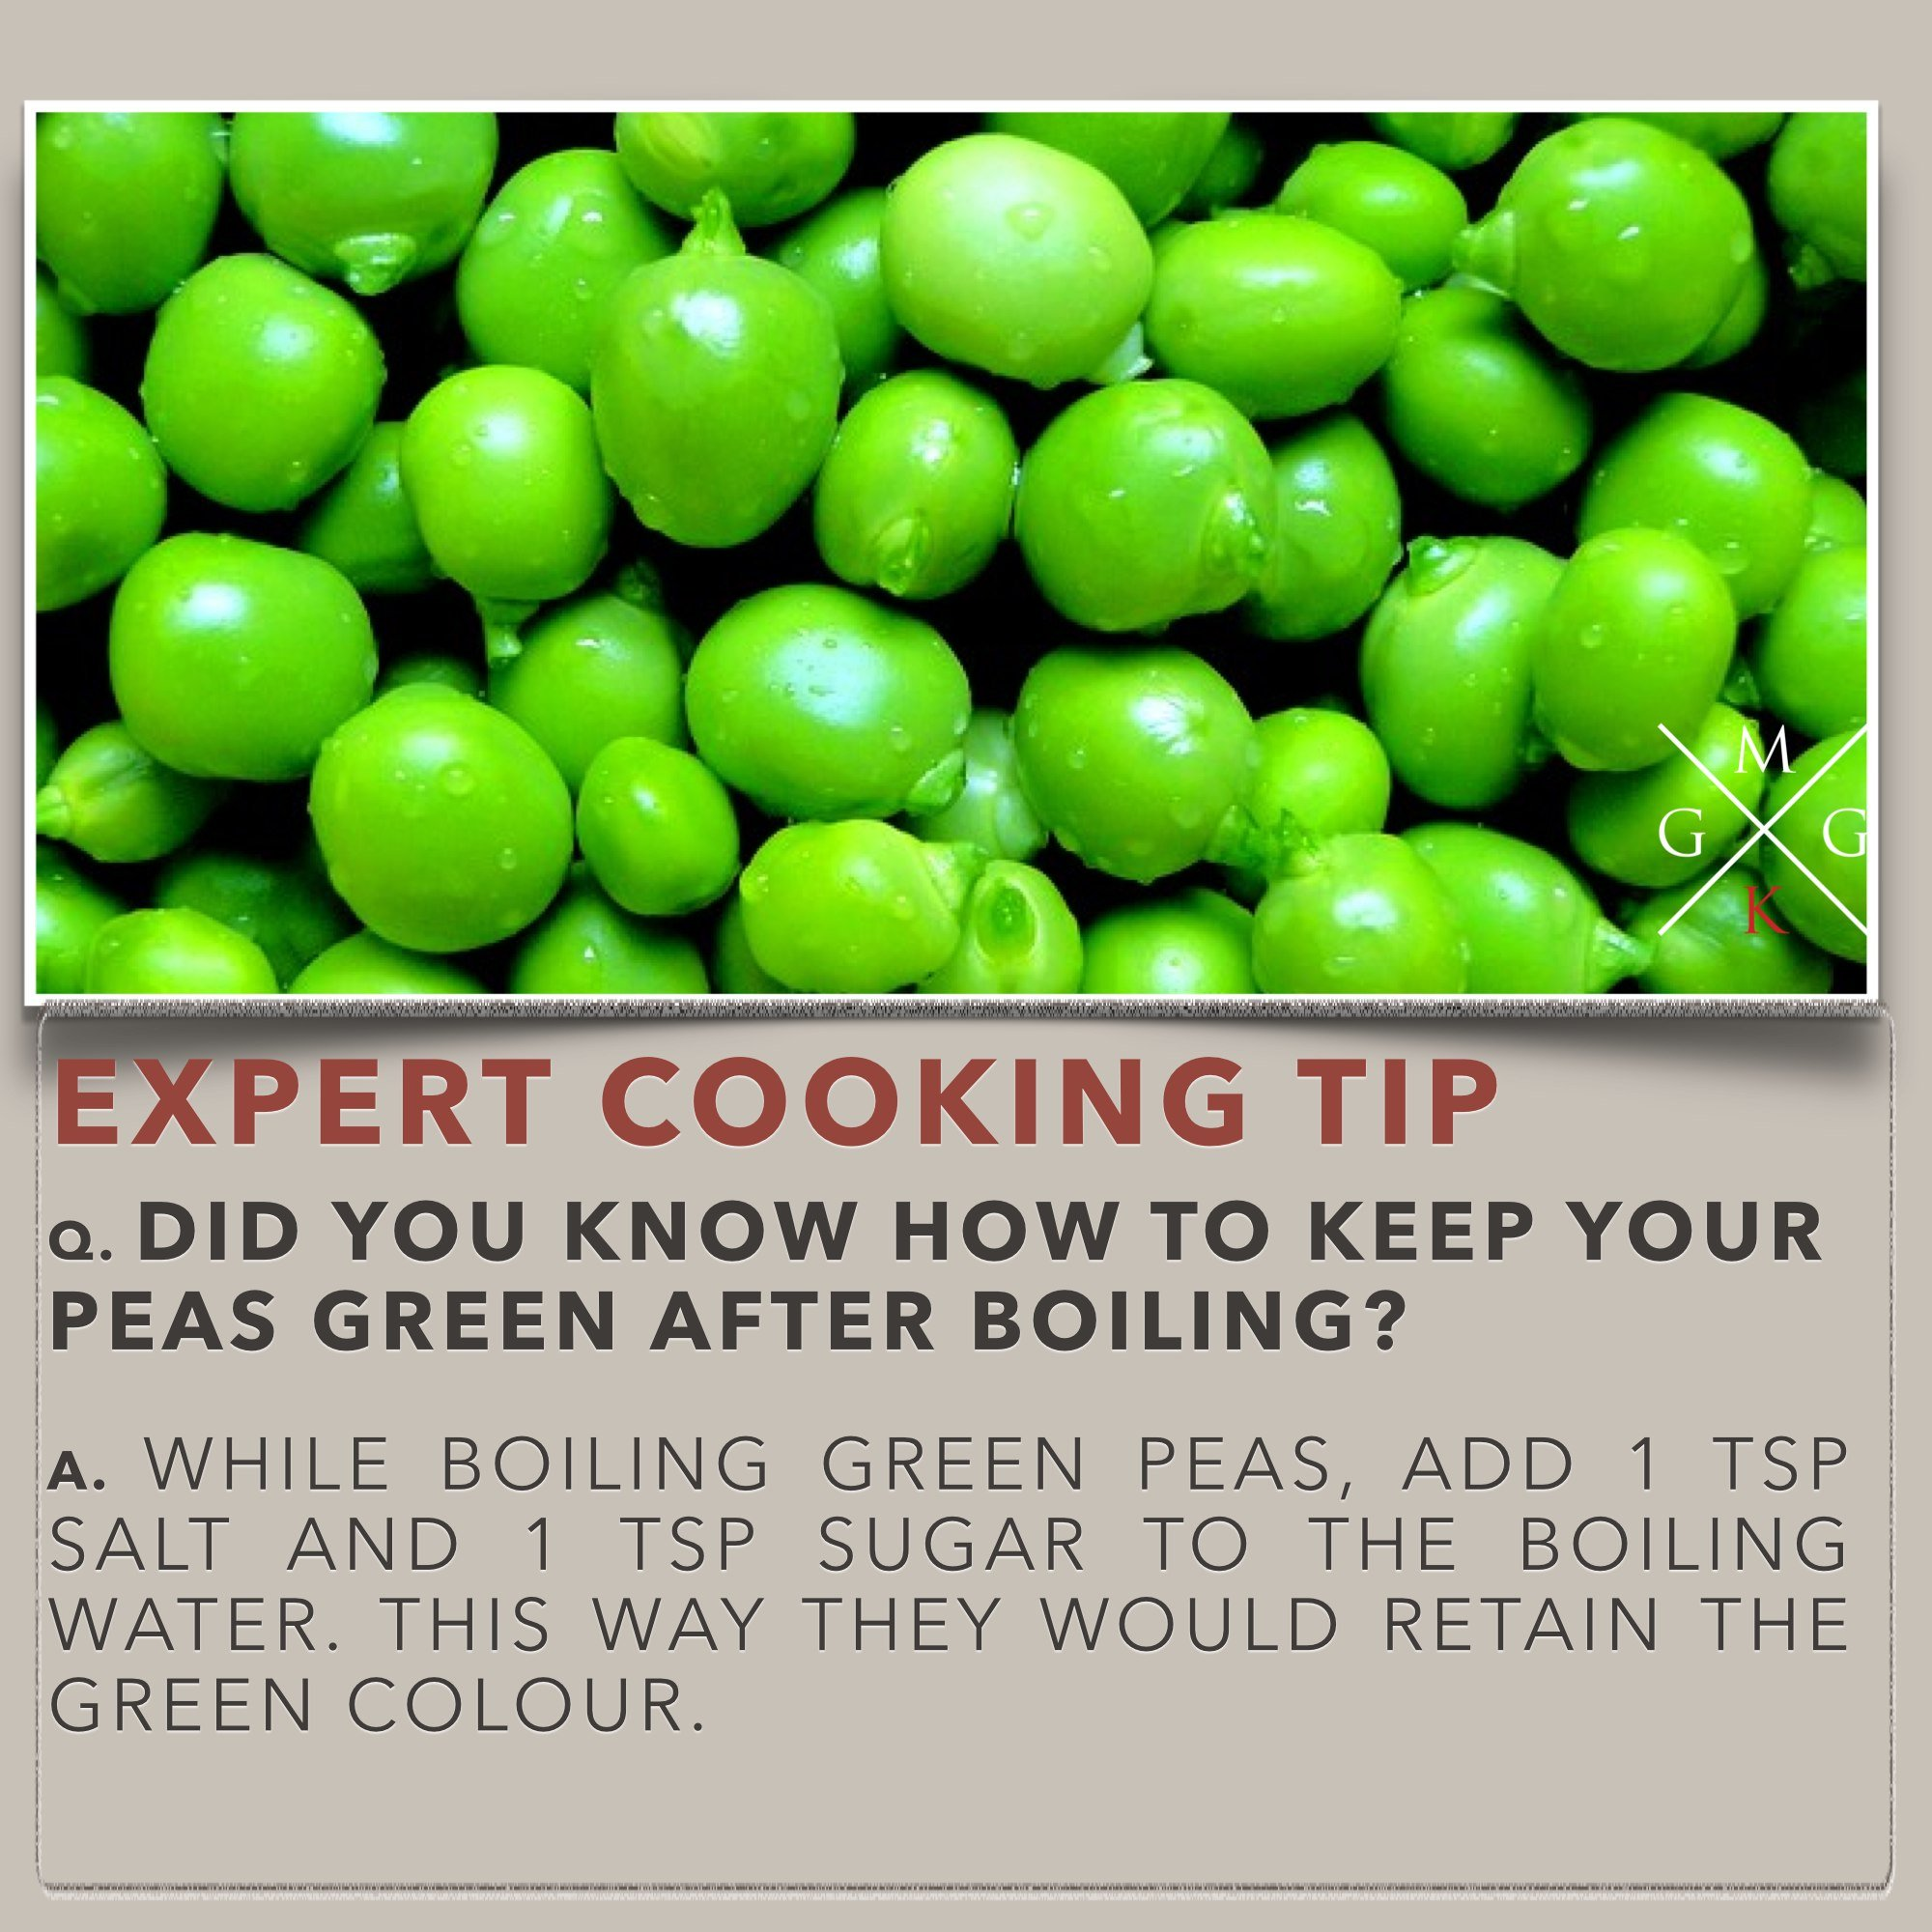 Tomato marmande agm seeds d t brown vegetable seeds - Cooking Tips How To Keep Peas Green After Boiling My